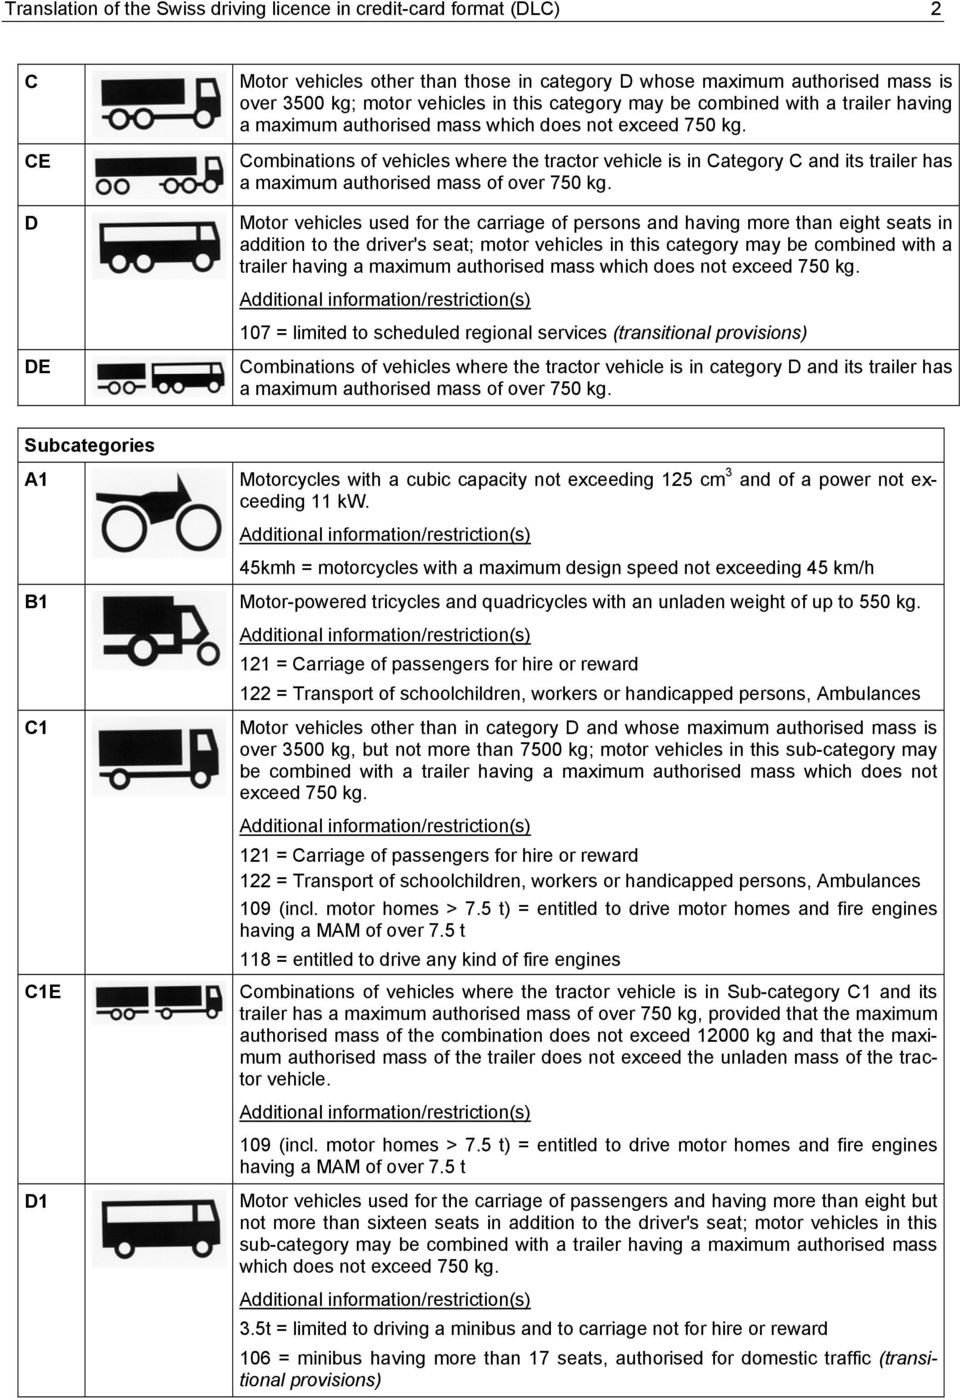 Combinations of vehicles where the tractor vehicle is in Category C and its trailer has a maximum authorised mass of over 750 kg.